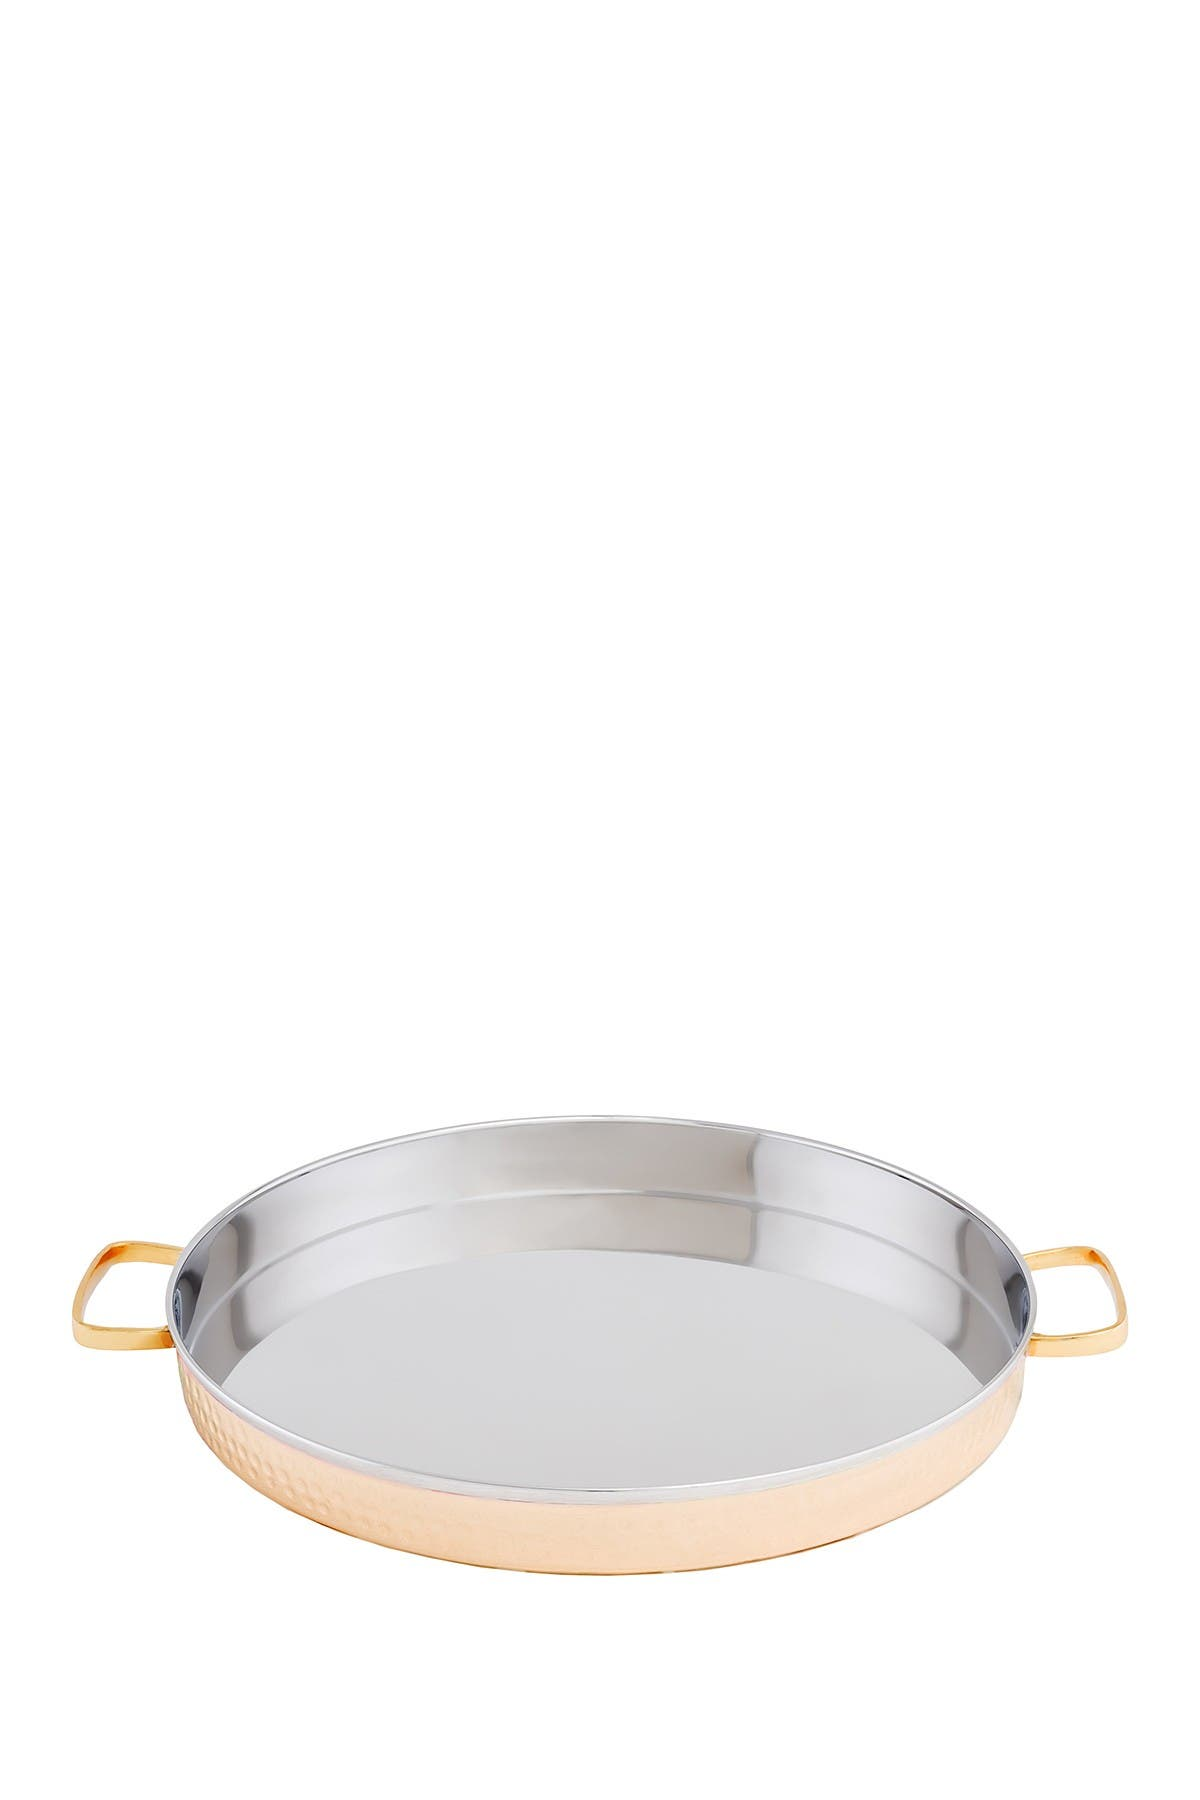 Image of ODI HOUSEWARES Two-Ply Solid Copper/Stainless Steel Hammered Tray